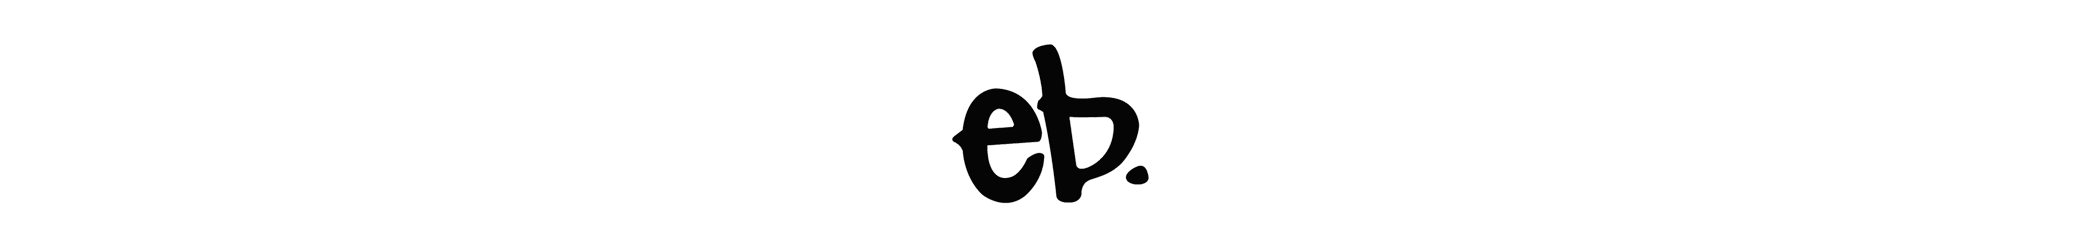 ecobabe.+initials copy.png